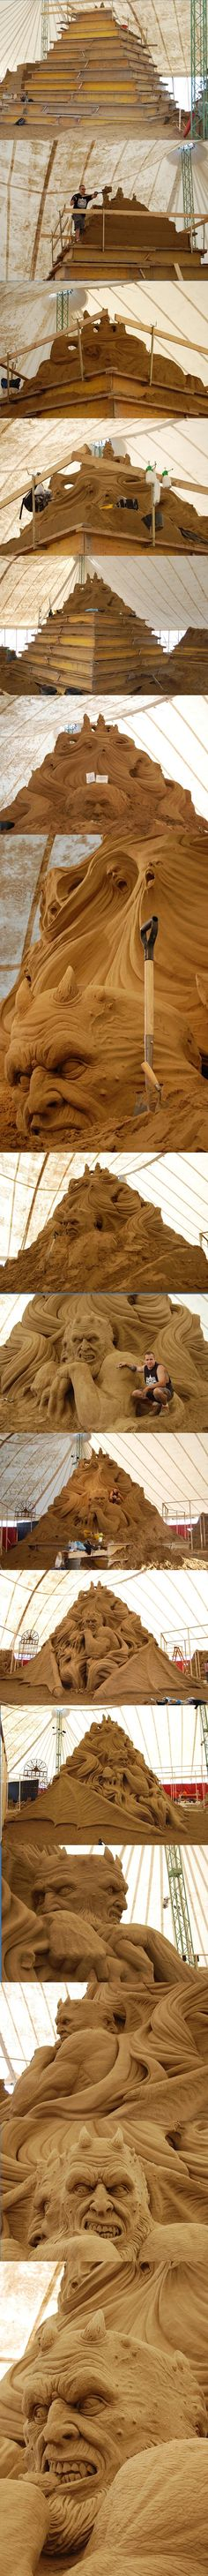 Ray Villafane is best known for his expert artistry in food carving. However, he's now recognized for more after accepting to take on a sand sculpting project in Jesolo, Italy. Despite not having any experience in creating sand sculptures, Villafane challenged himself and took part in the annual holiday project.